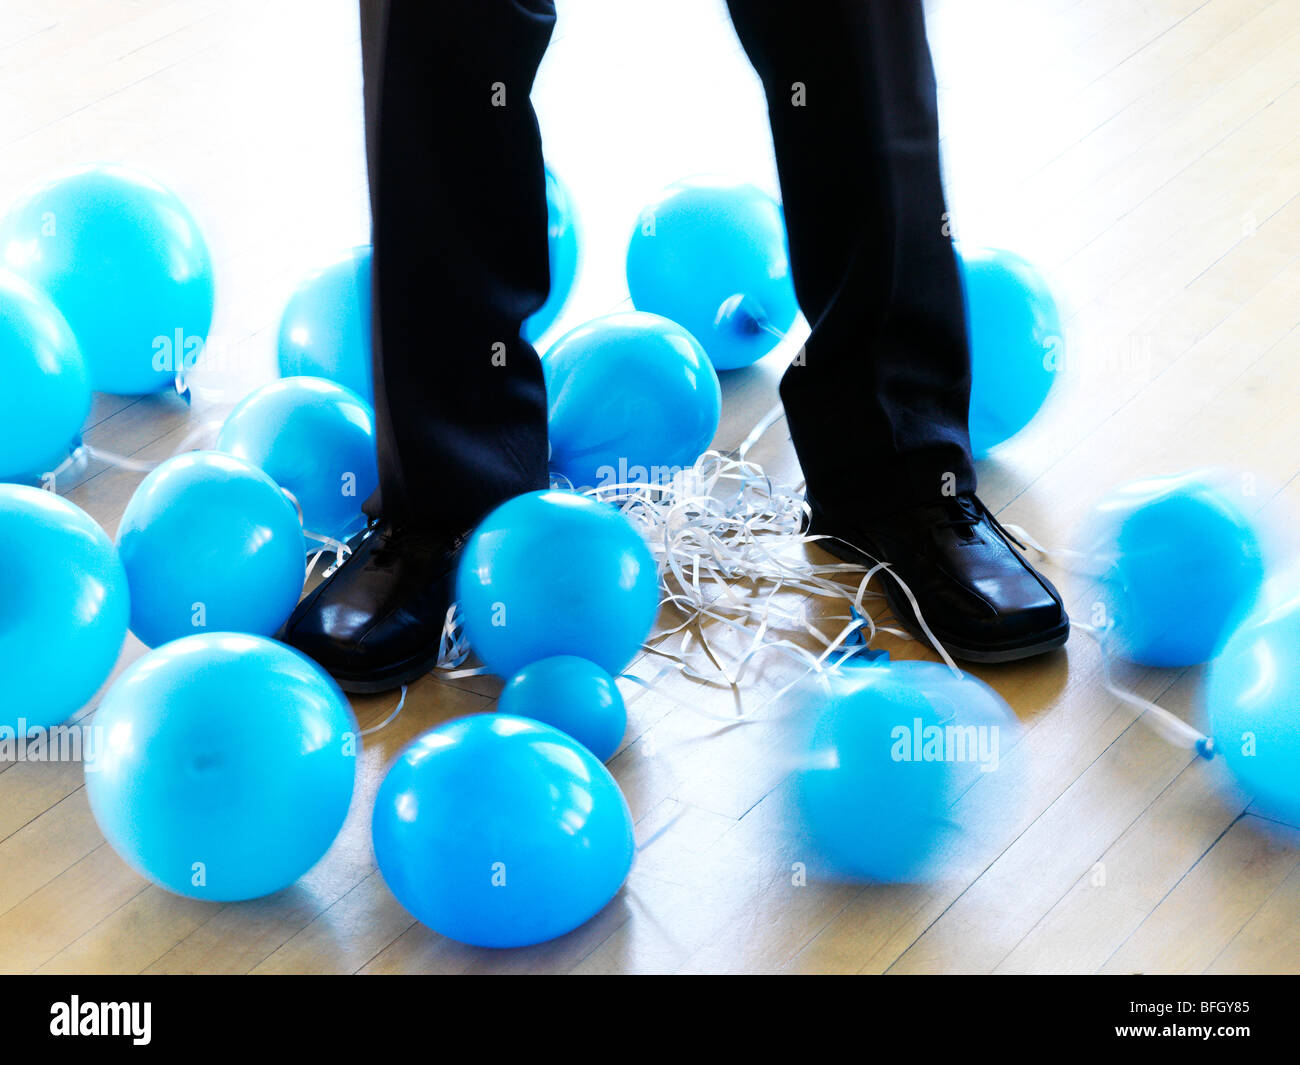 businessman's legs entangled with deflated balloons - Stock Image